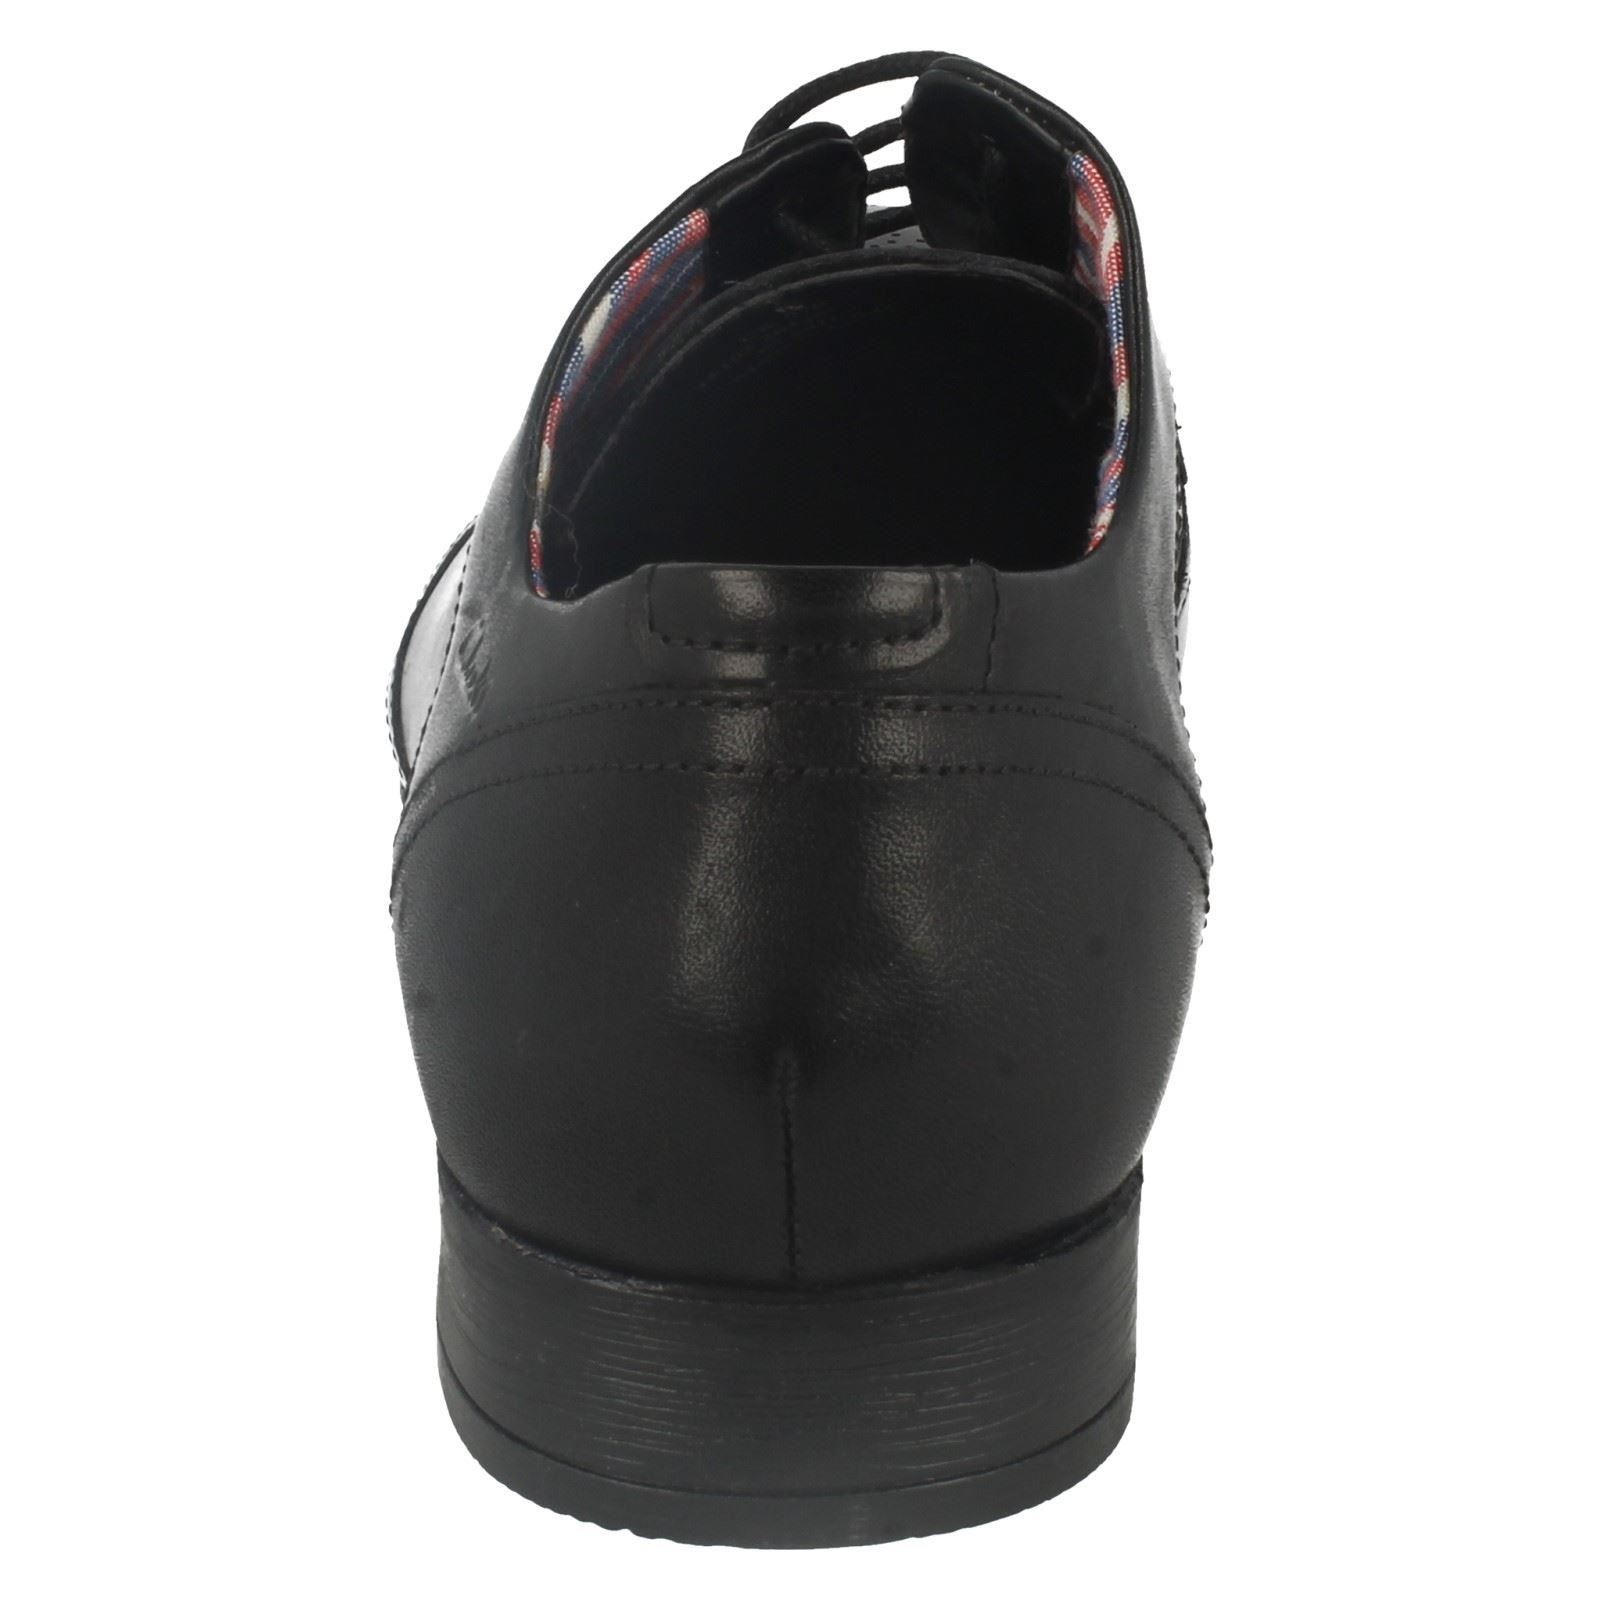 Hommes Chaussures Clarks Chaussures Hommes Formal Clarks Formal Formal Clarks Clarks Formal Chaussures Hommes Hommes RRSqwg1